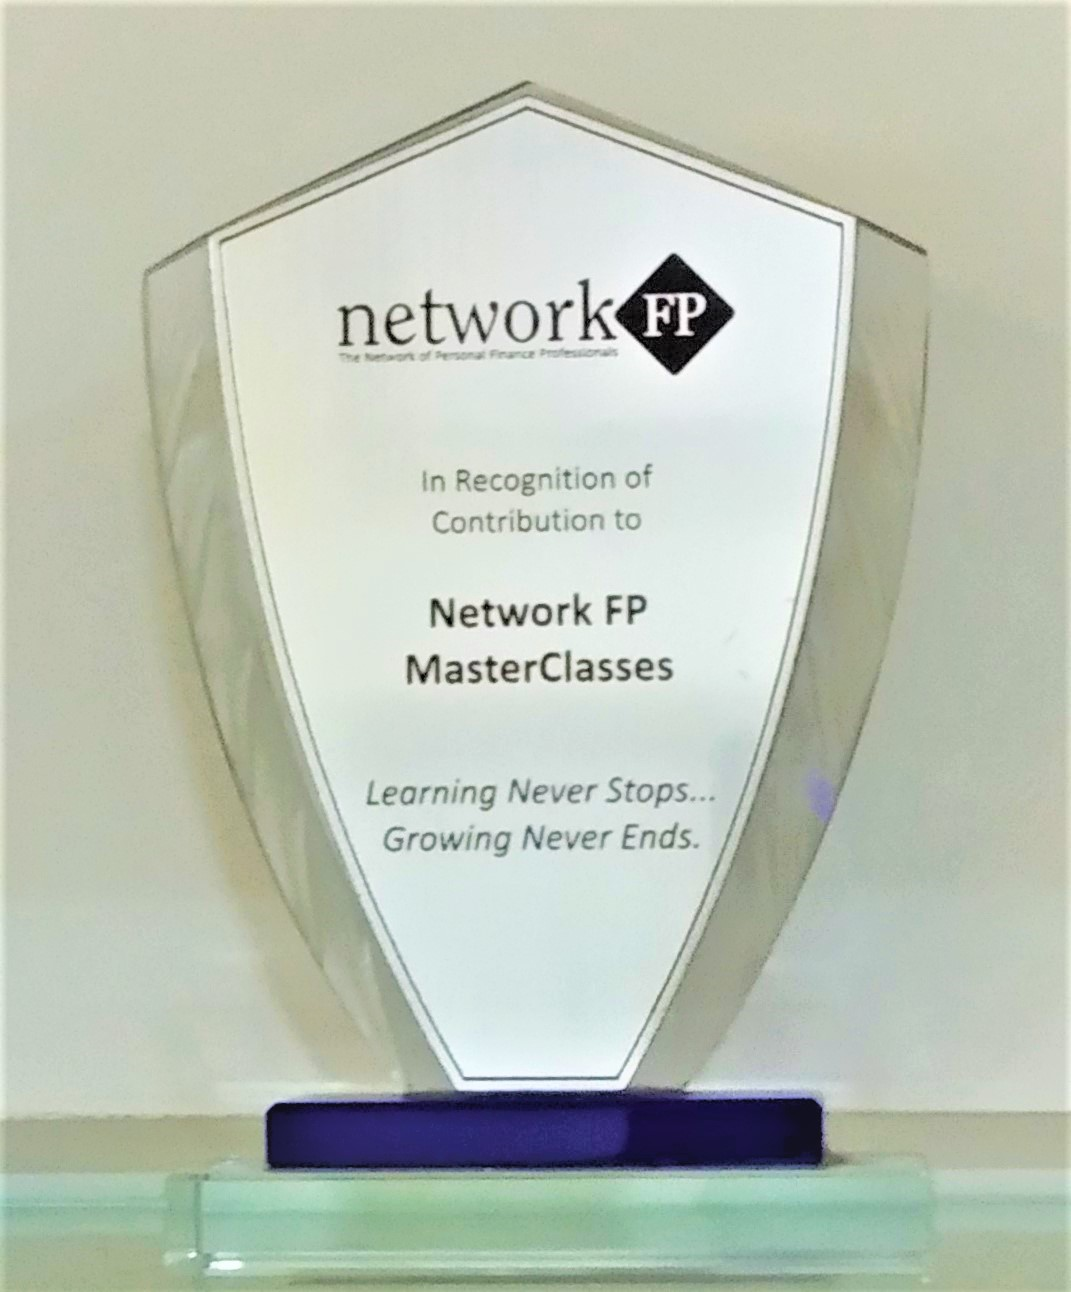 Achieved Recognition from networkFP Master classes